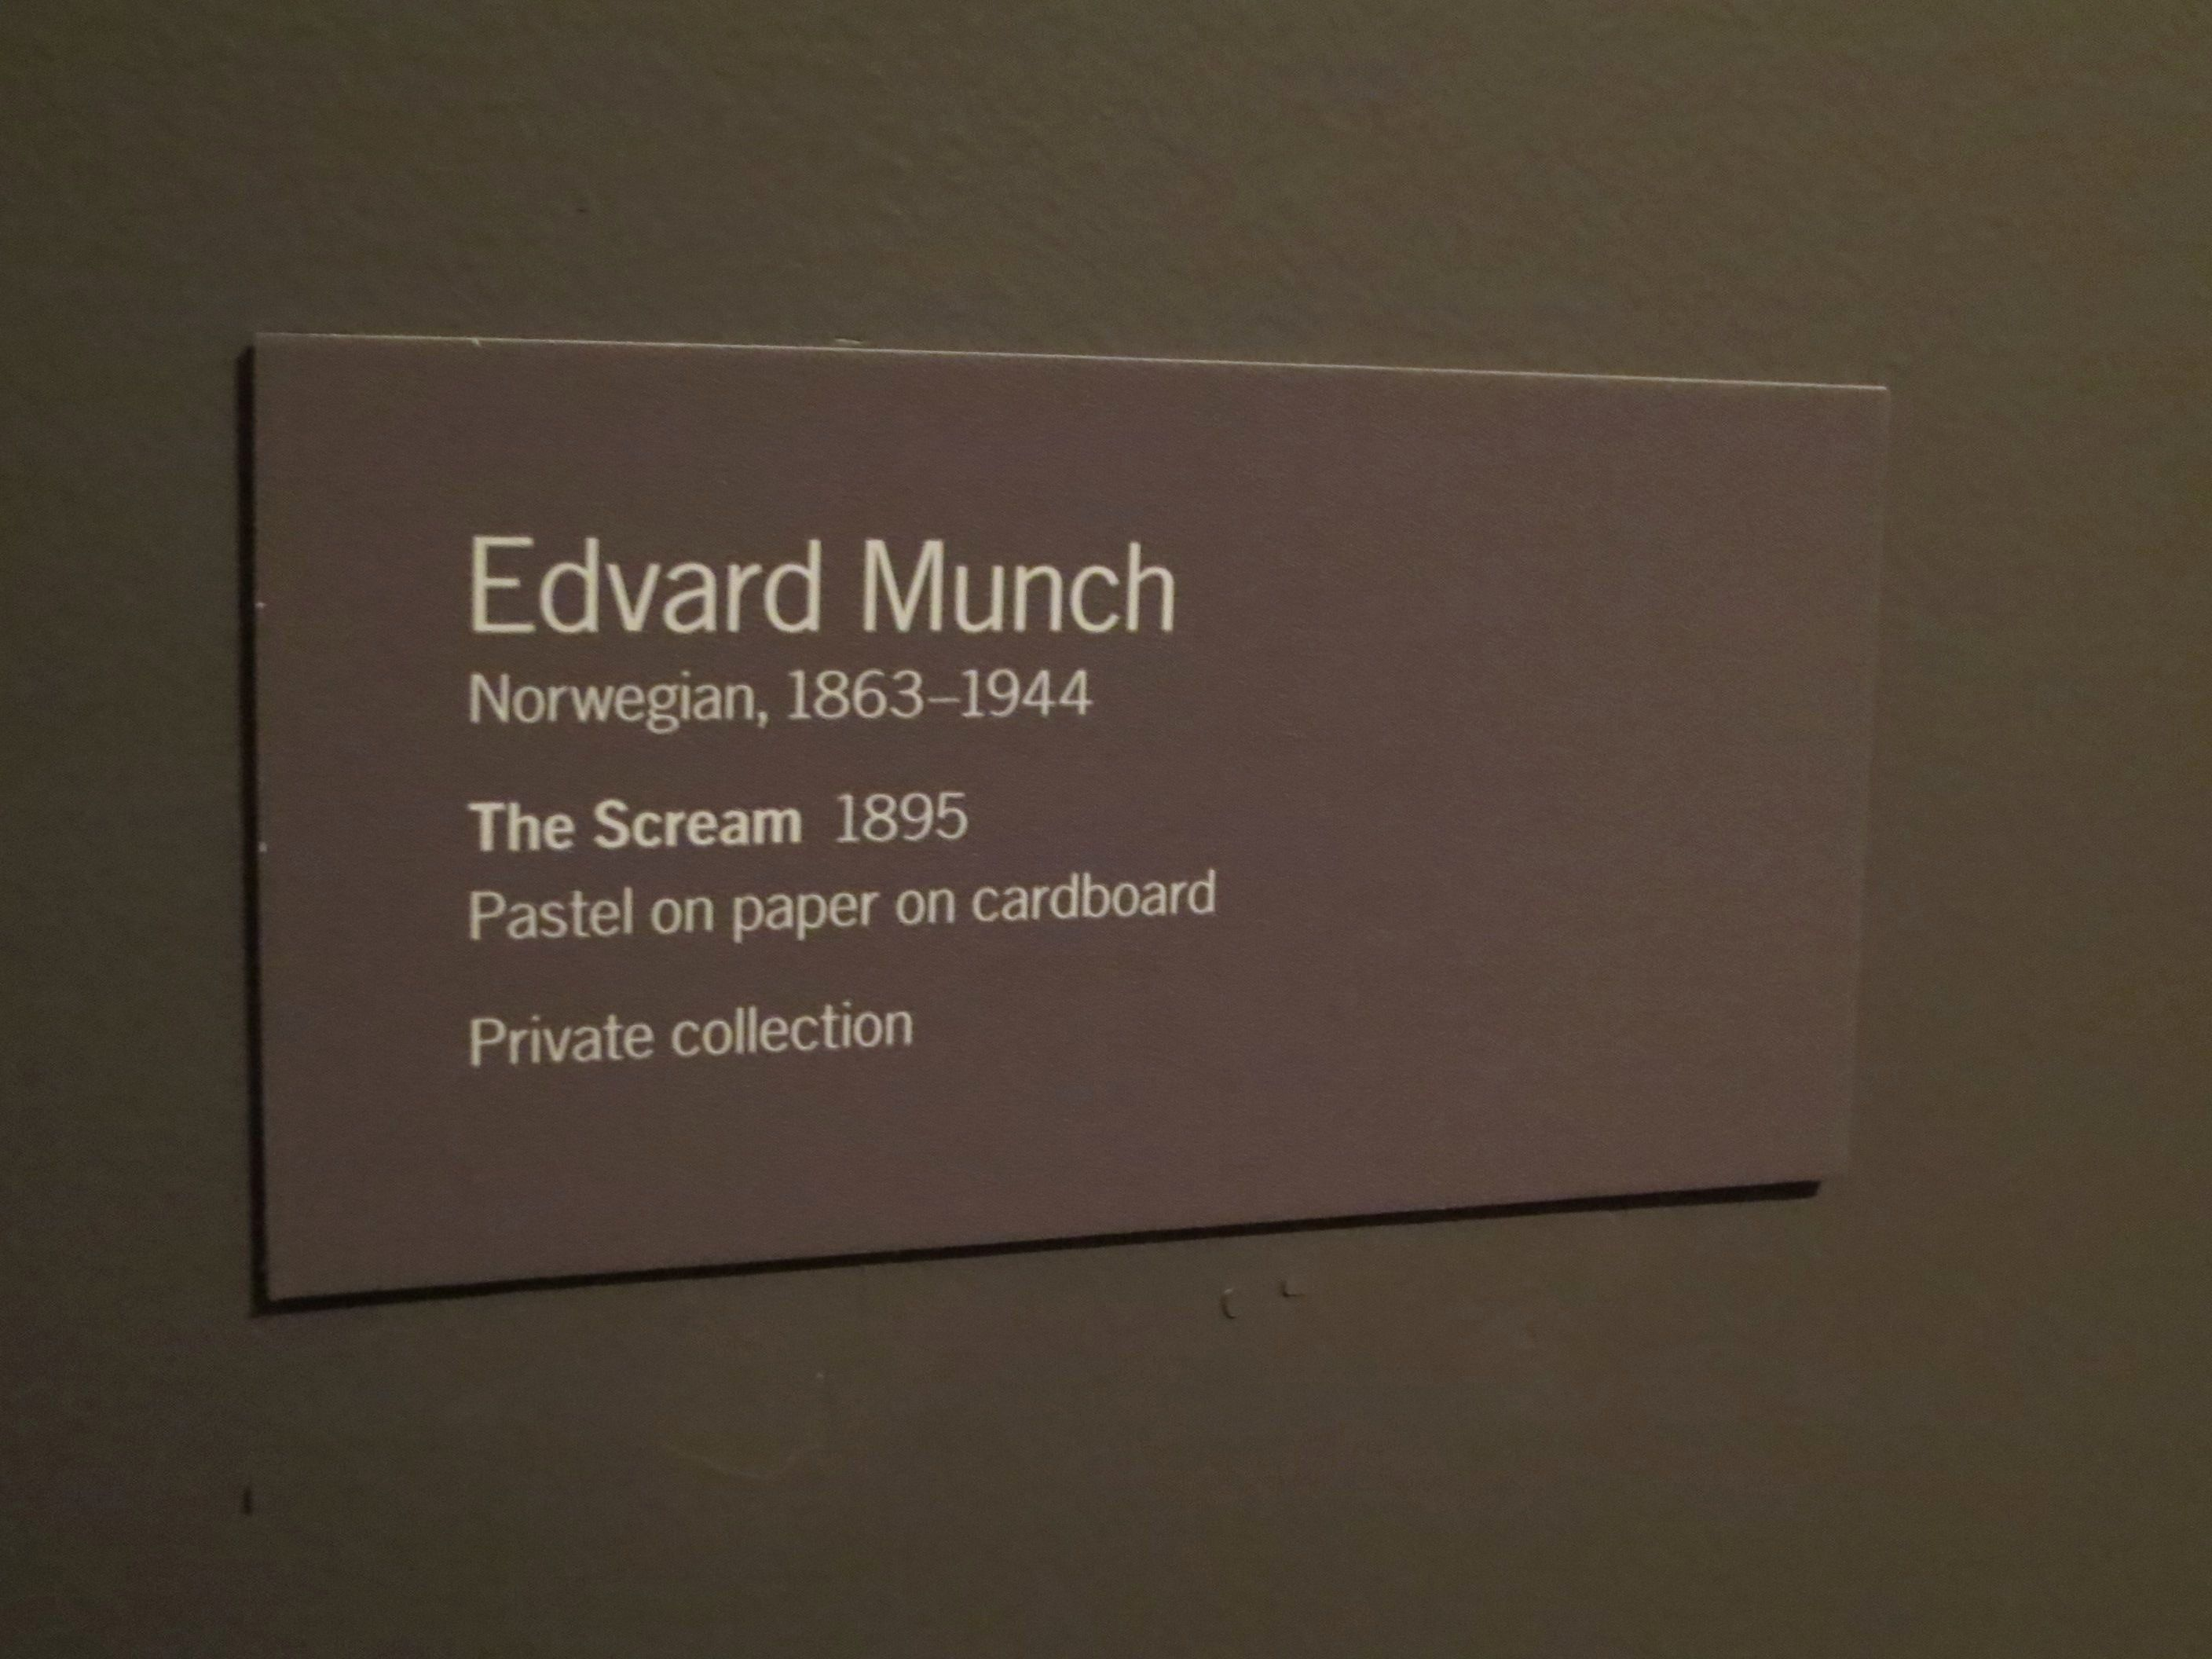 Art Gallery Labels Template Inspirational Edvard Munch The Scream 1895 Pastel On Paper On Label Templates Art Show Wall Text